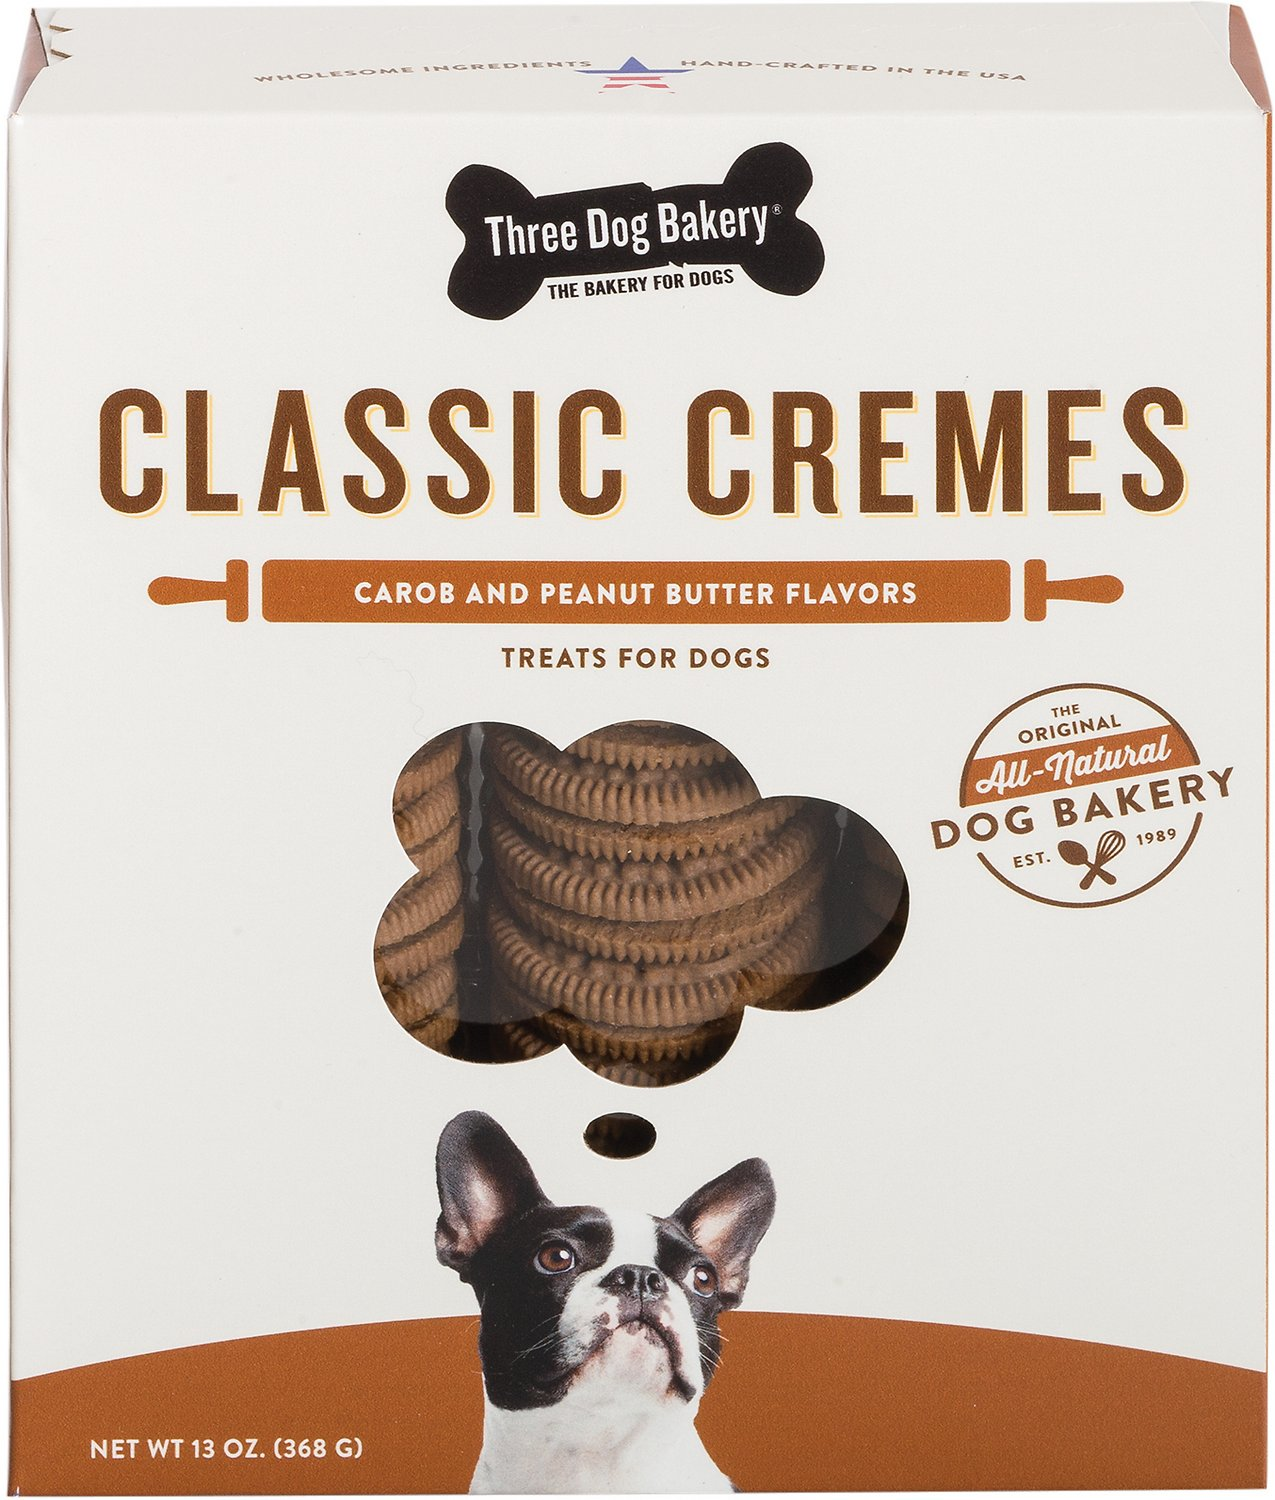 Three Dog Bakery Classic Cremes Carob Cookies with Natural Peanut Butter Filling Packaged Everyday Treats, 13-oz box